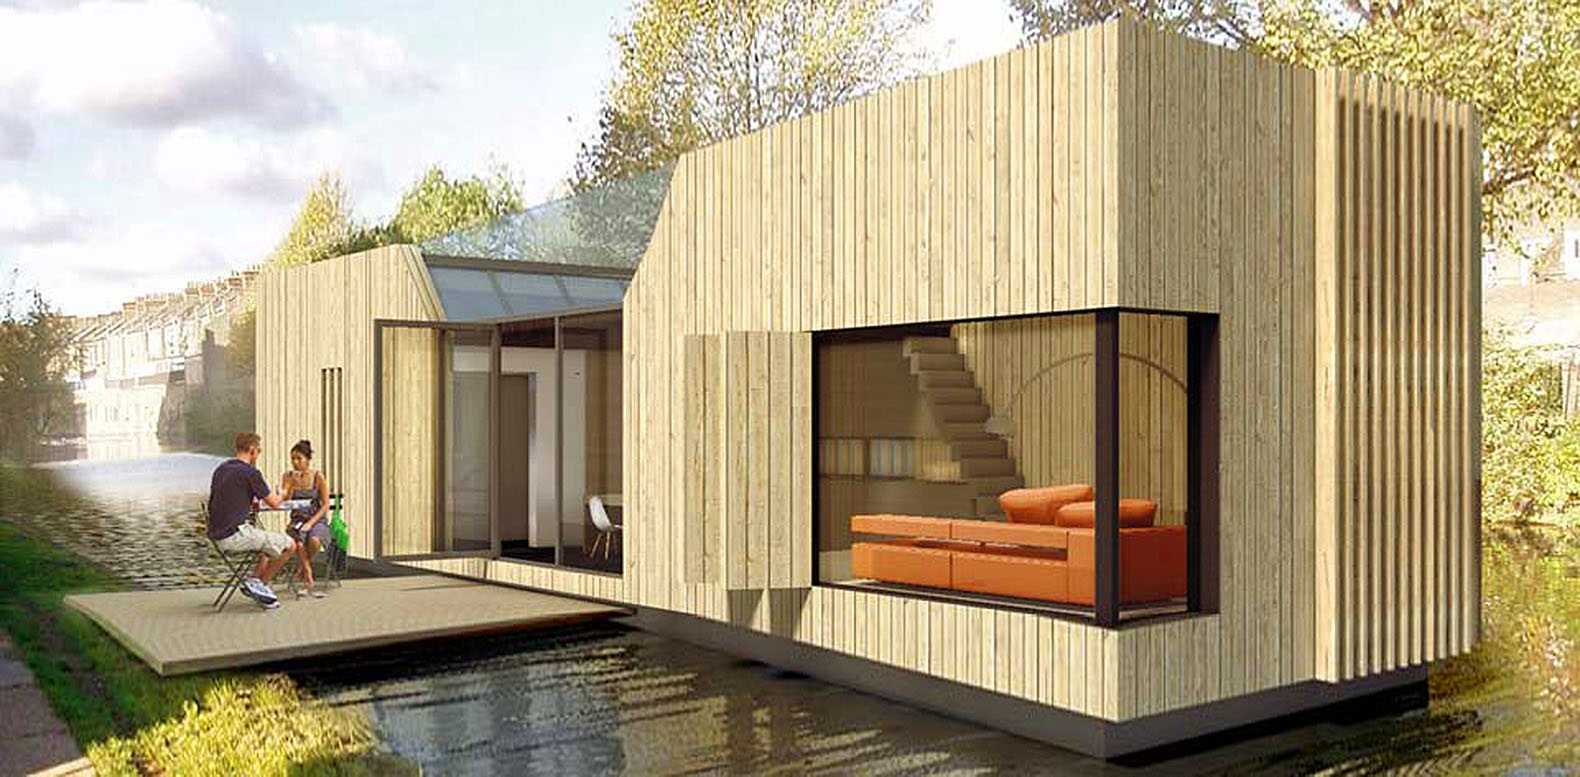 7,500 Affordable Floating Homes Could Help Fight Londonu0027s Crippling Housing  Crisis